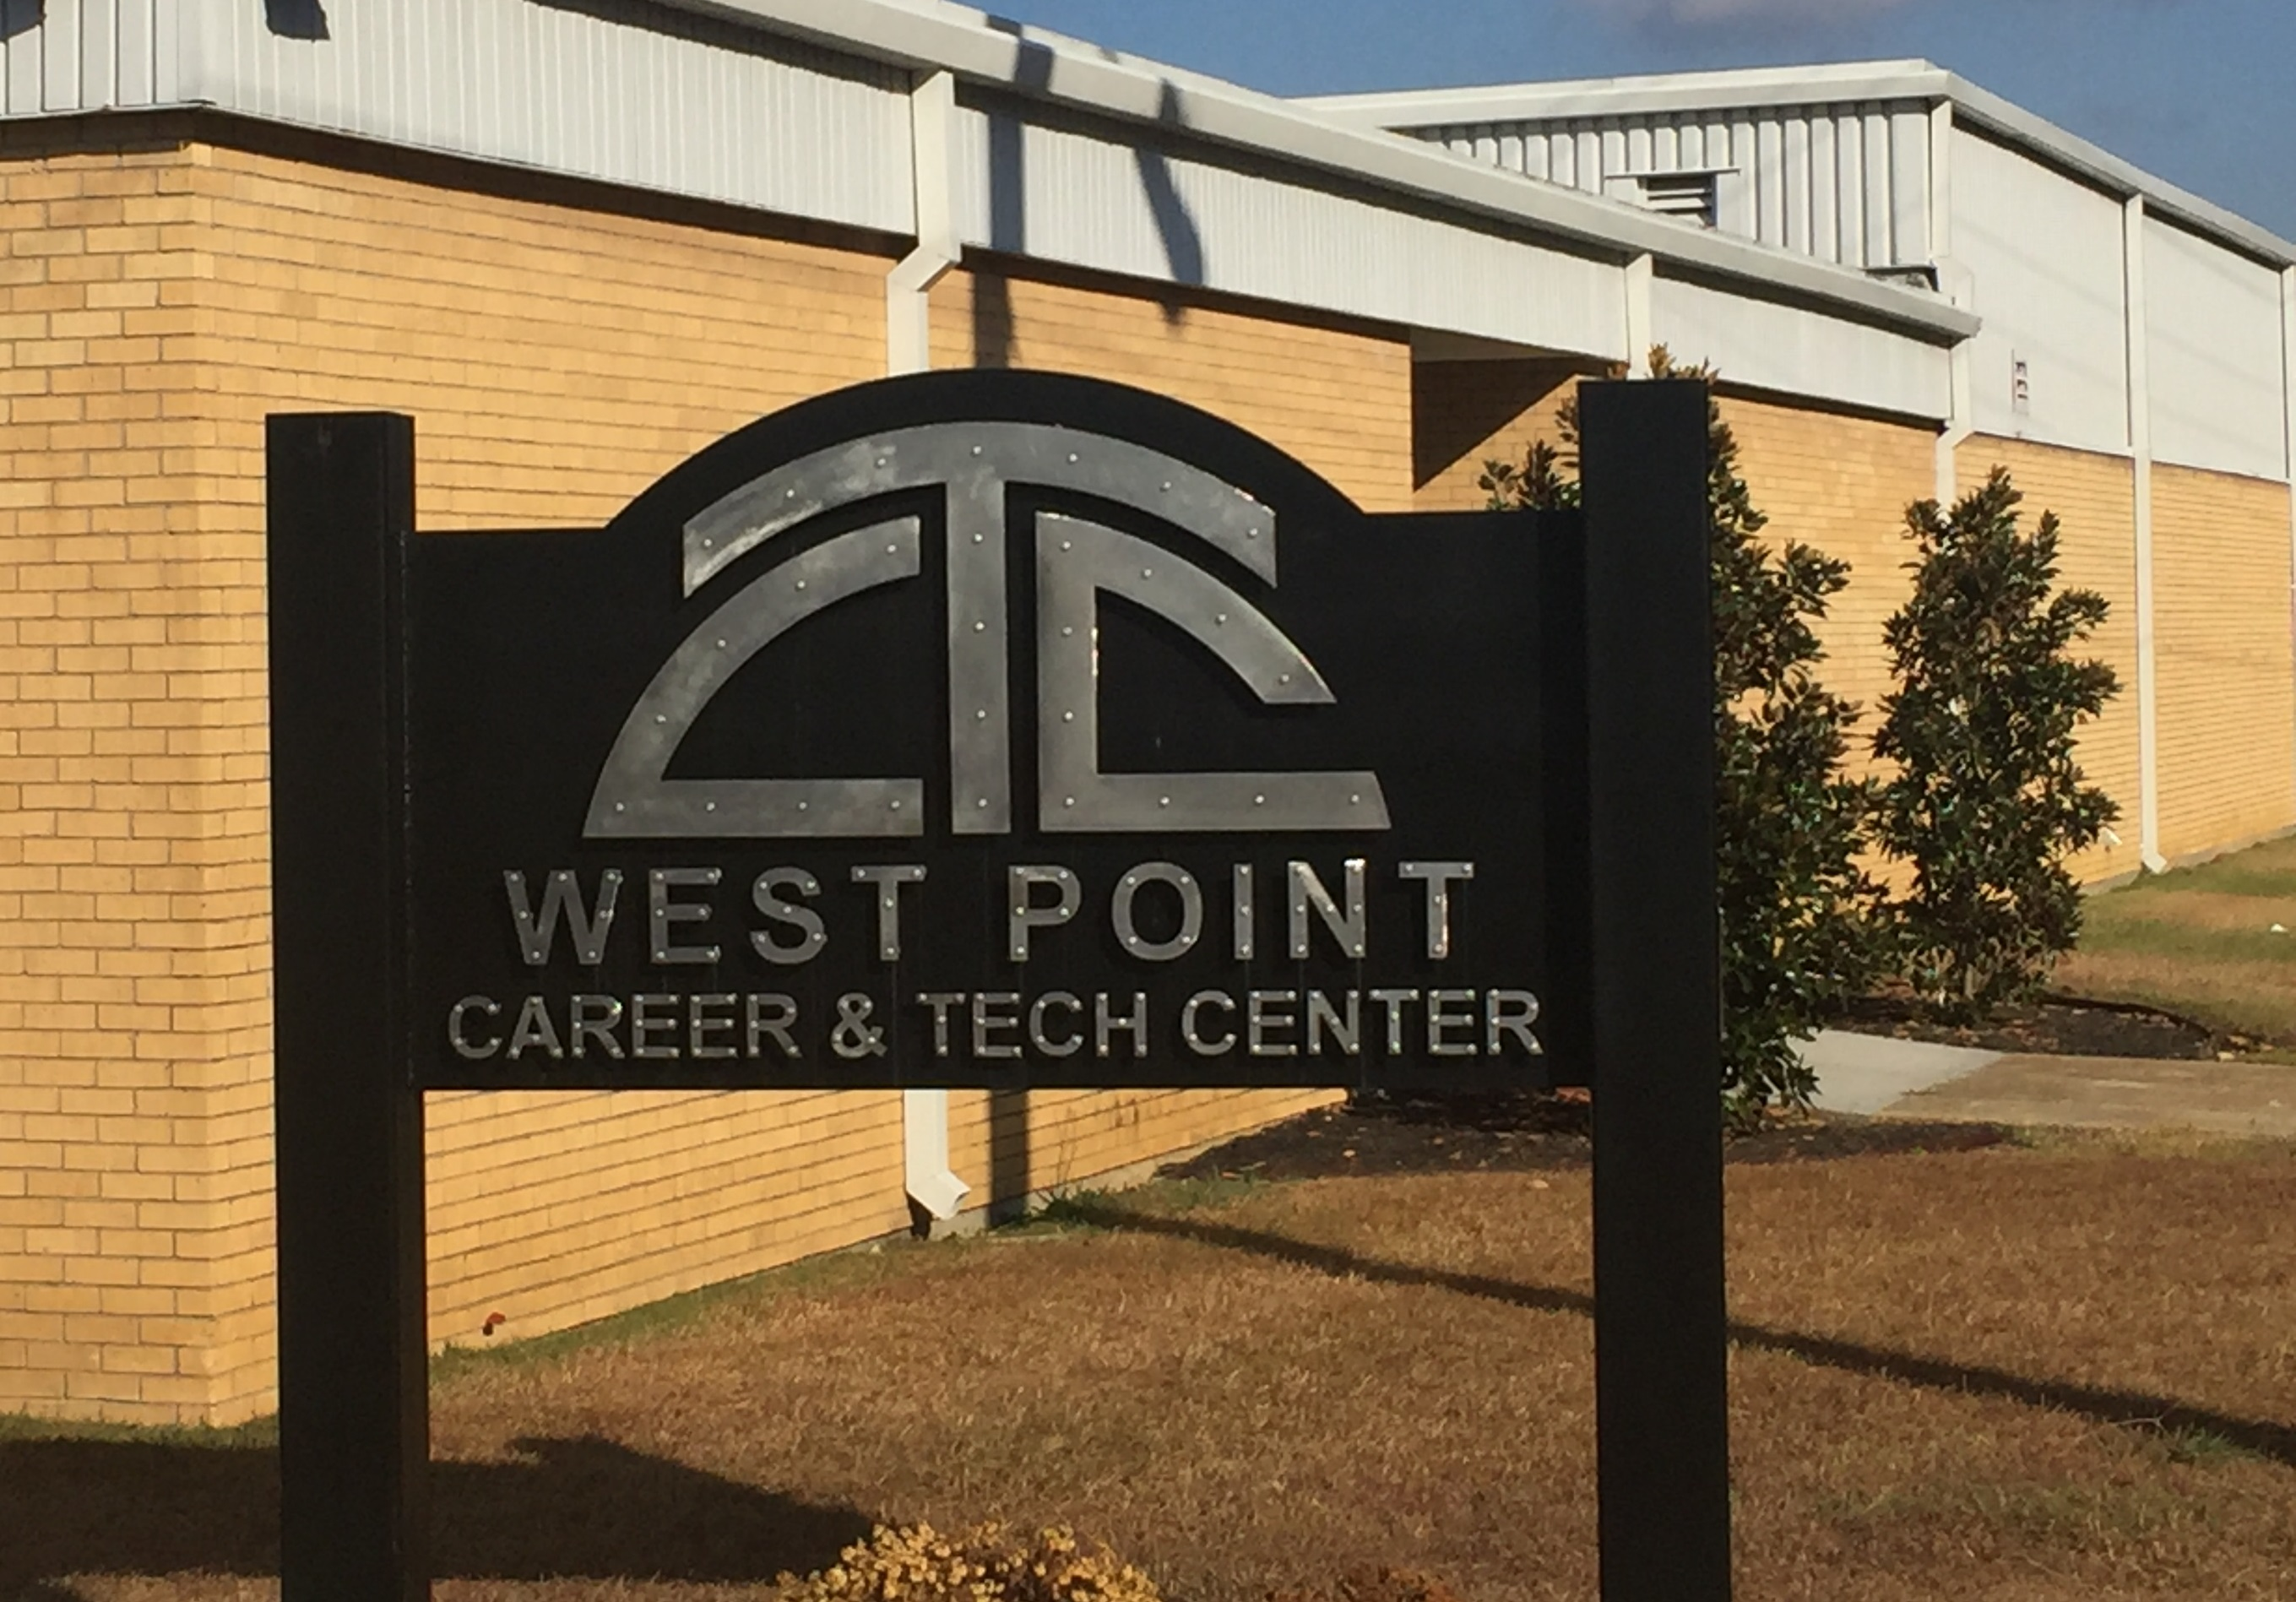 West Point Career & Tech Center